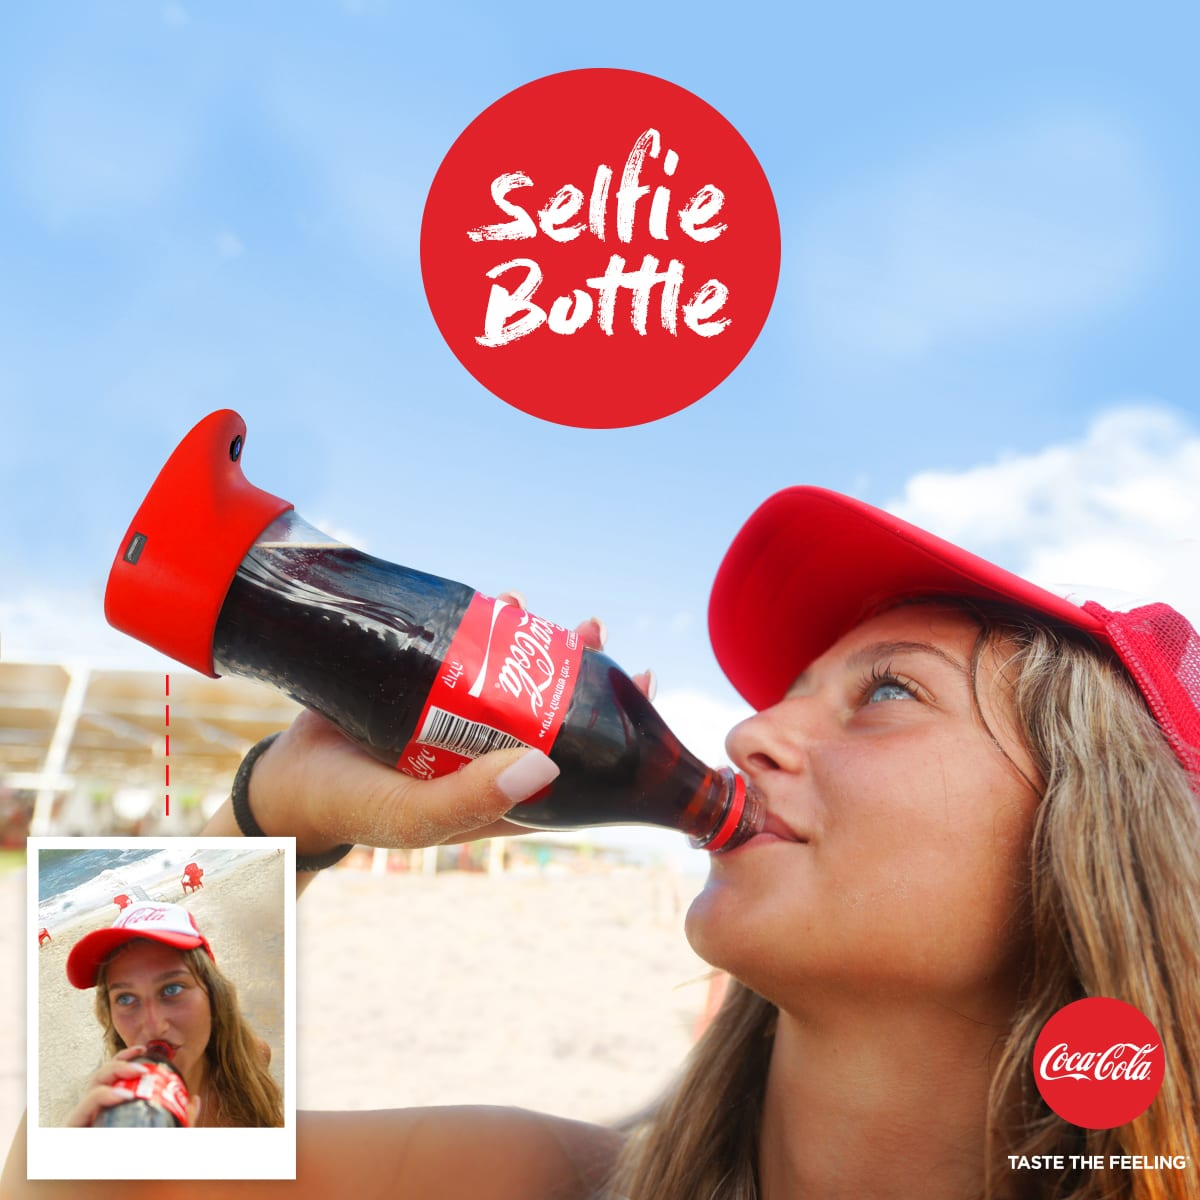 guerrilla-coca-cola-selfie-bottle